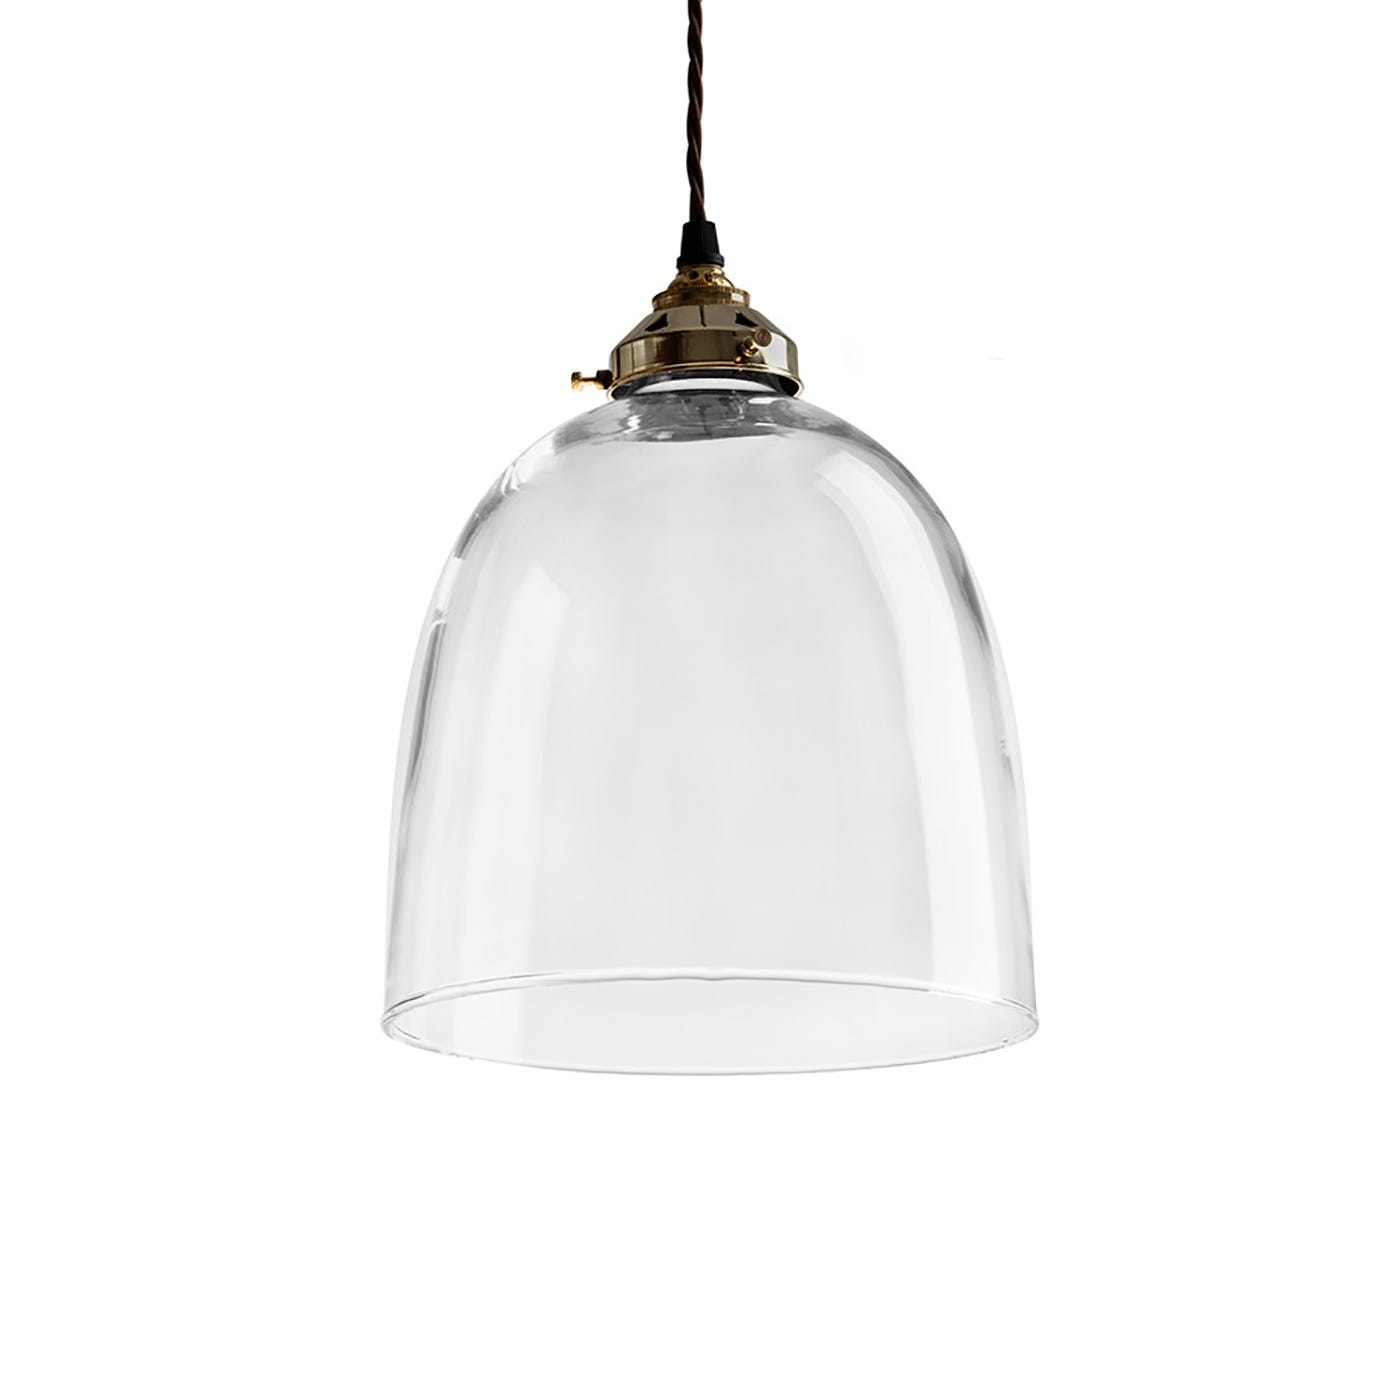 Glass Bell Pendant Light Antique Metal Fittings Extra Large - Discontinued  sc 1 st  Healu0027s & Glass Bell Pendant Light Antique Metal Fittings Extra Large ... azcodes.com